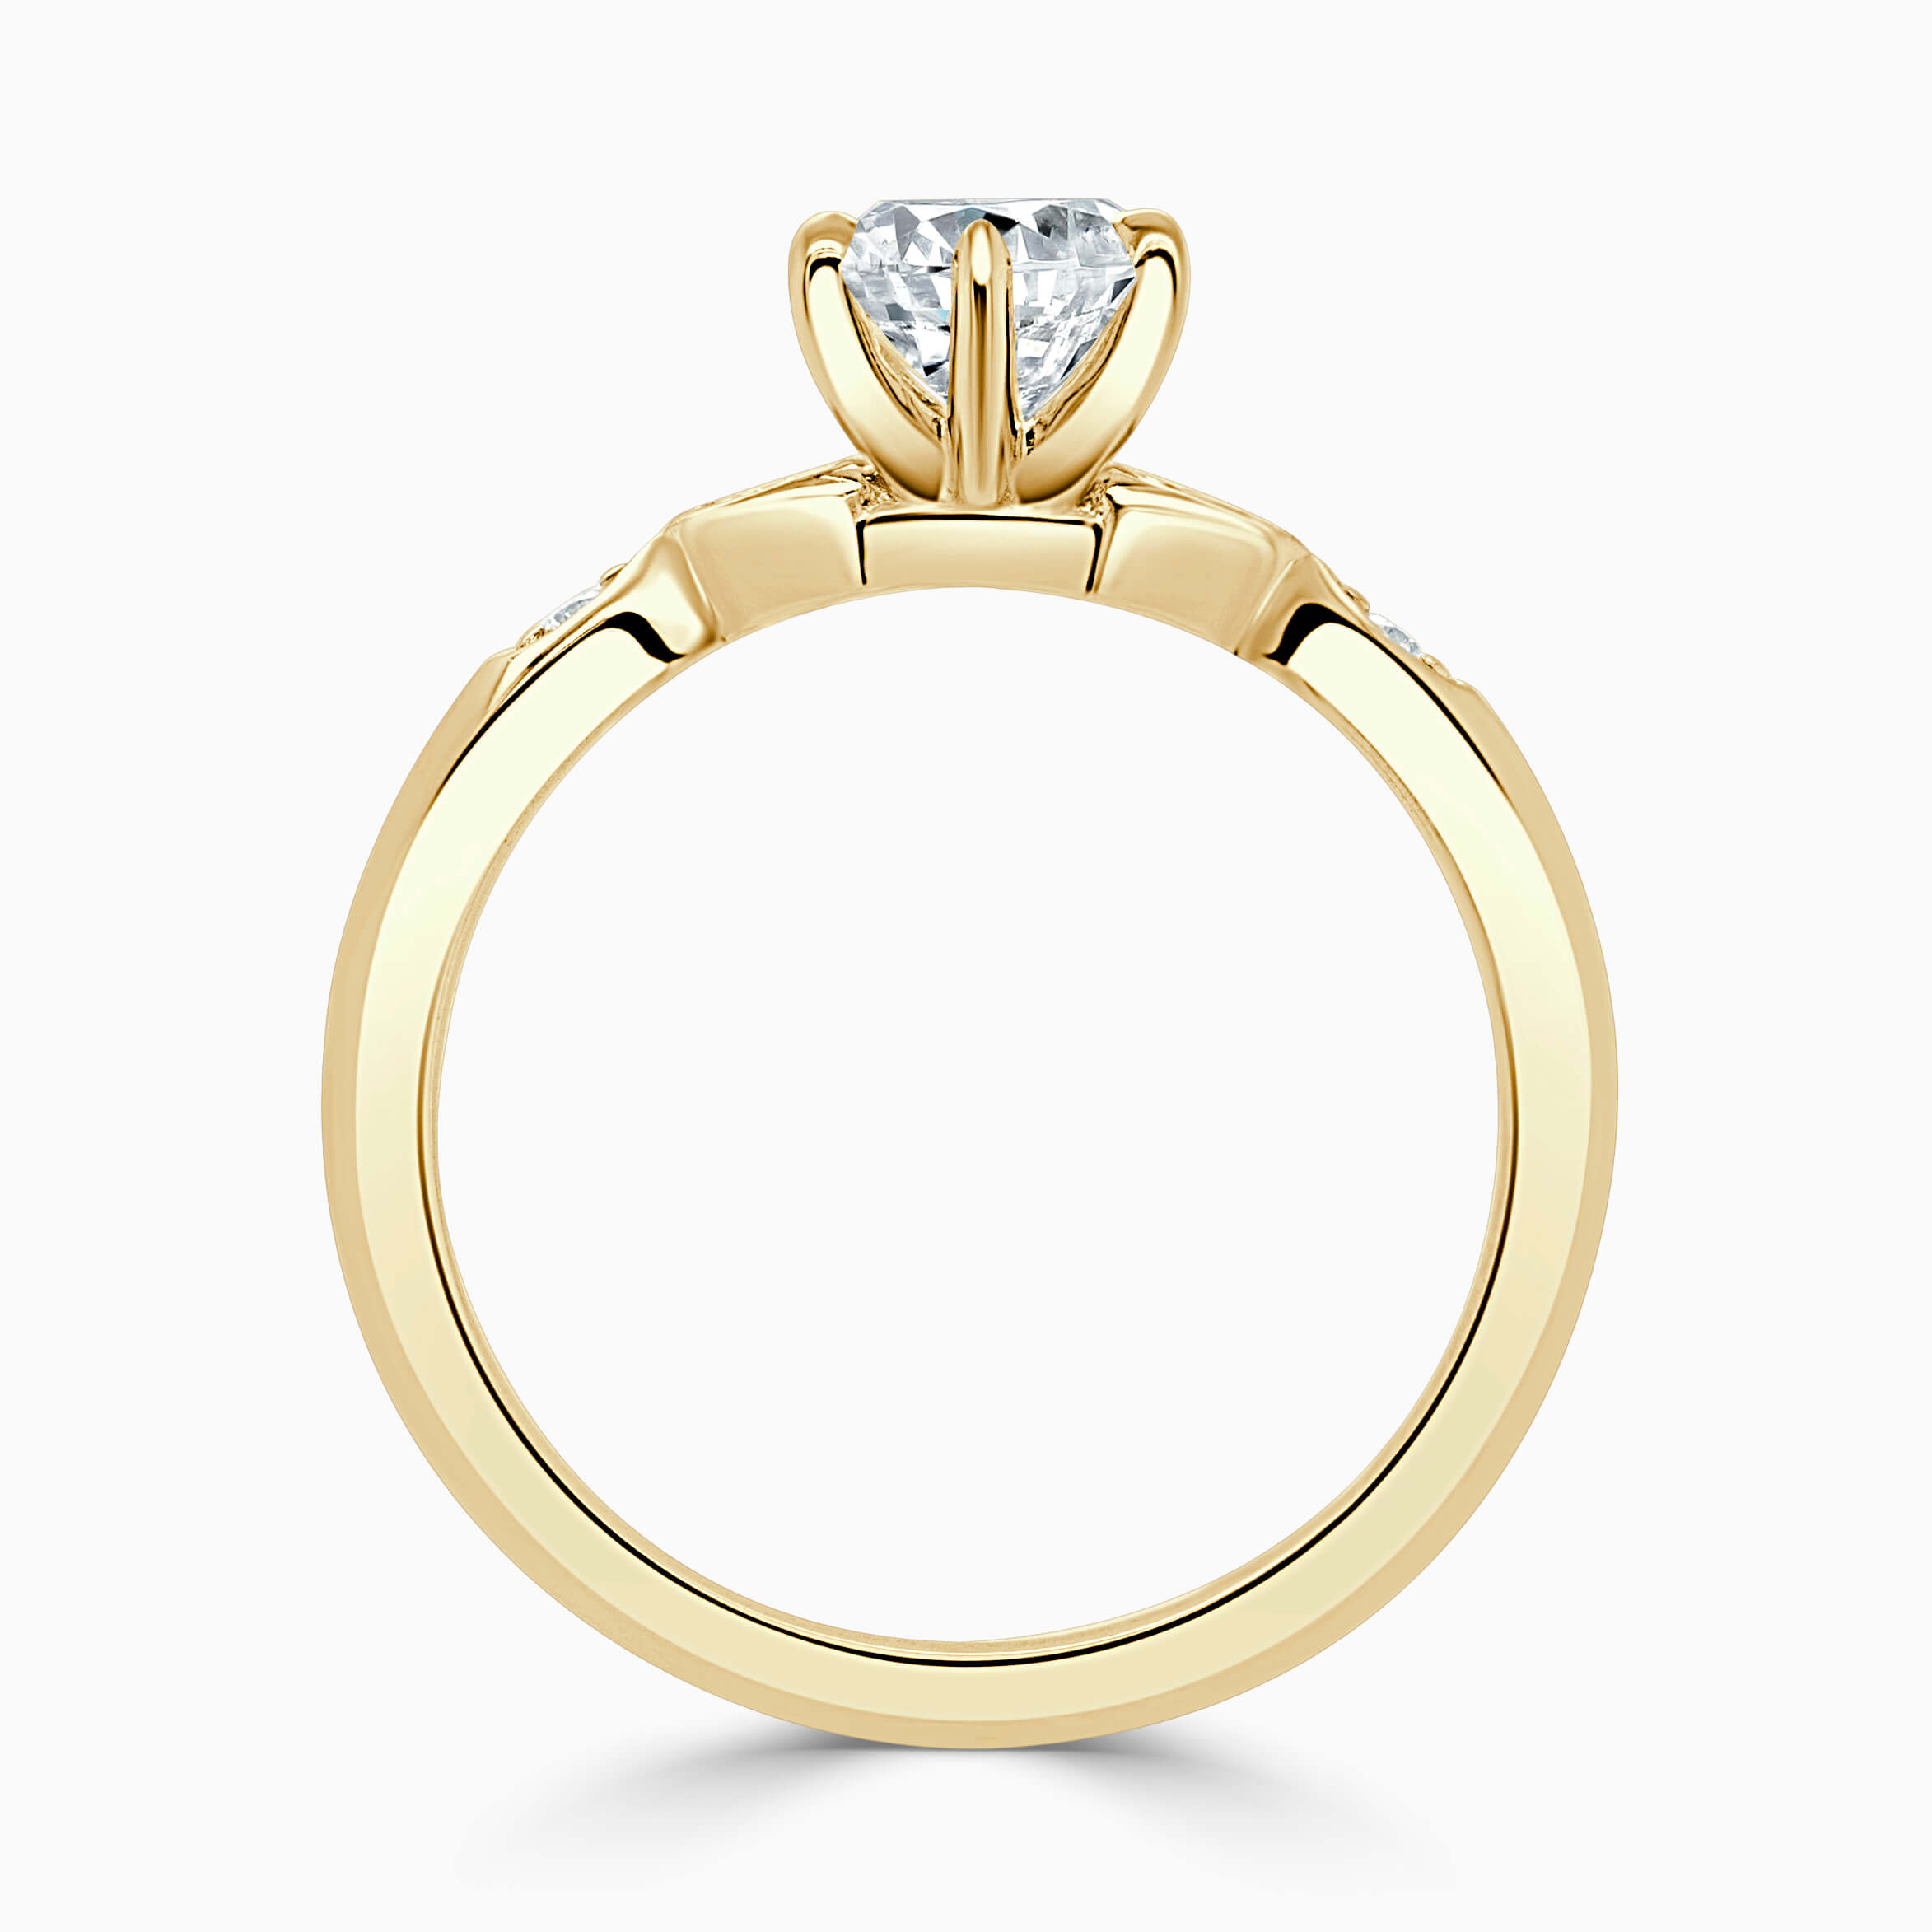 18ct Yellow Gold Round Brilliant 6 Claw With Vintage Pave Engagement Ring